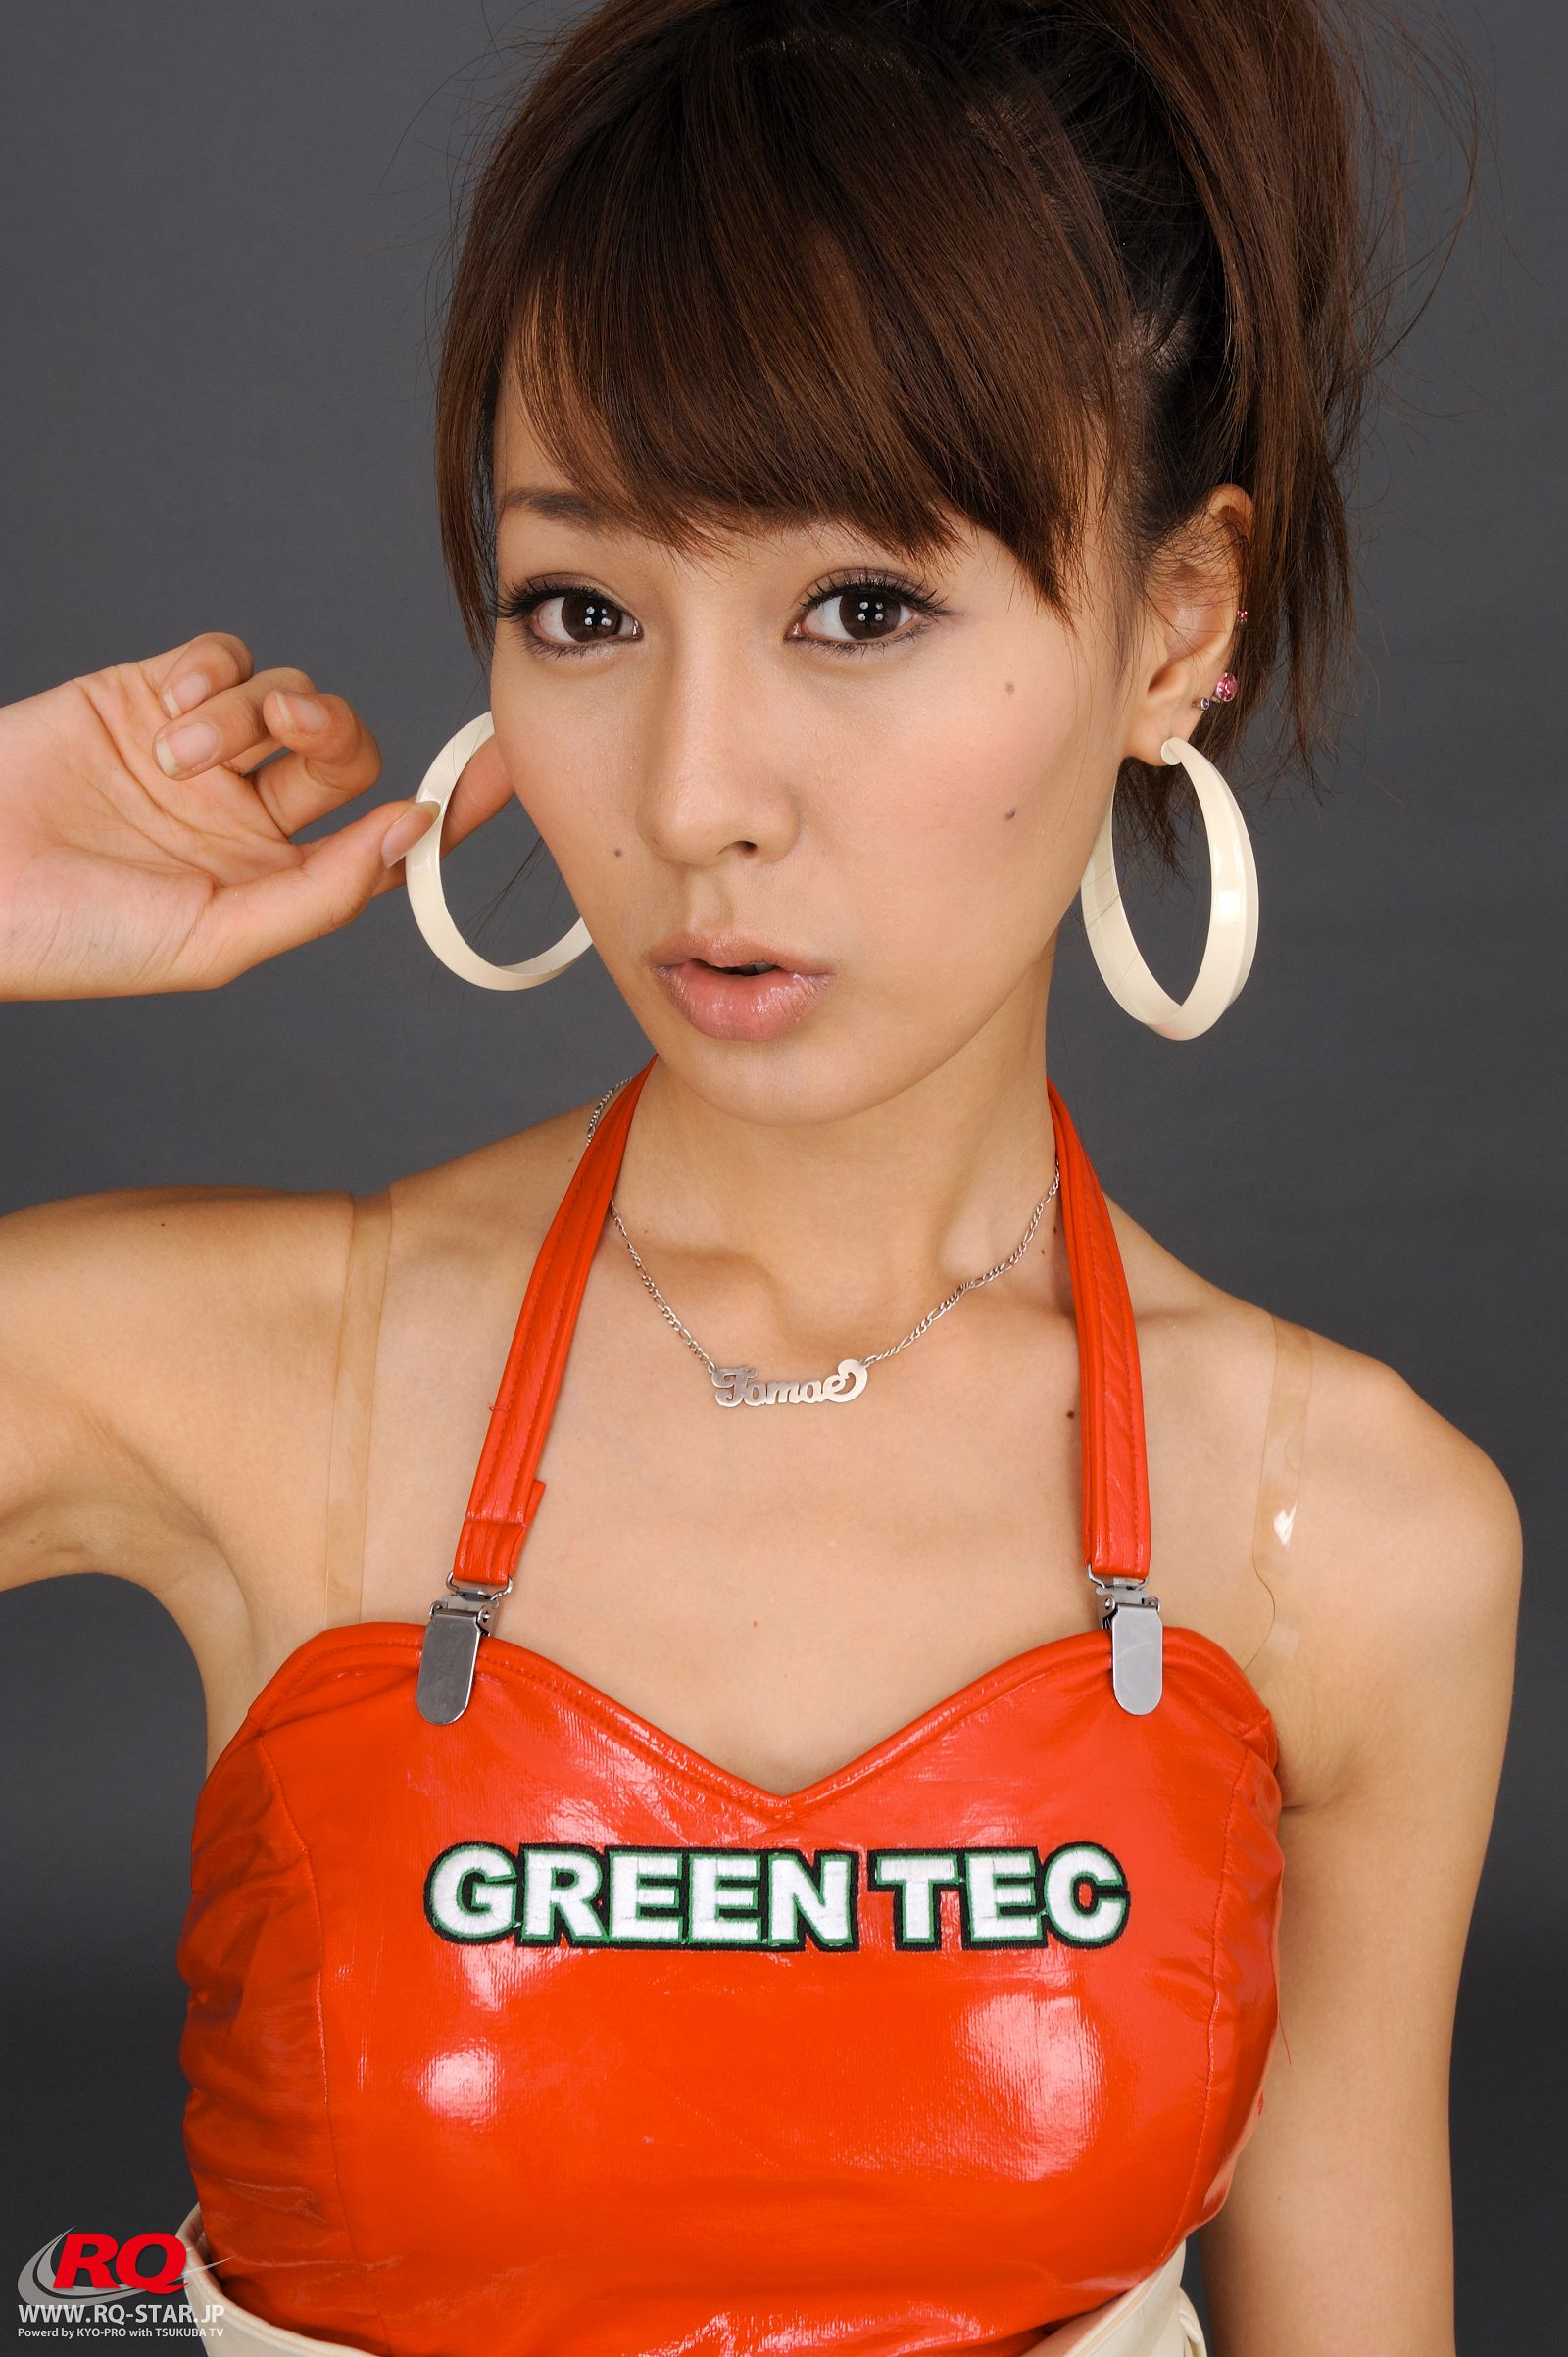 [RQ STAR美女] NO.0065 Tomoe Nakagawa 中川知映 Race Queen 2008 Green Tec[111P] RQ STAR 第3张